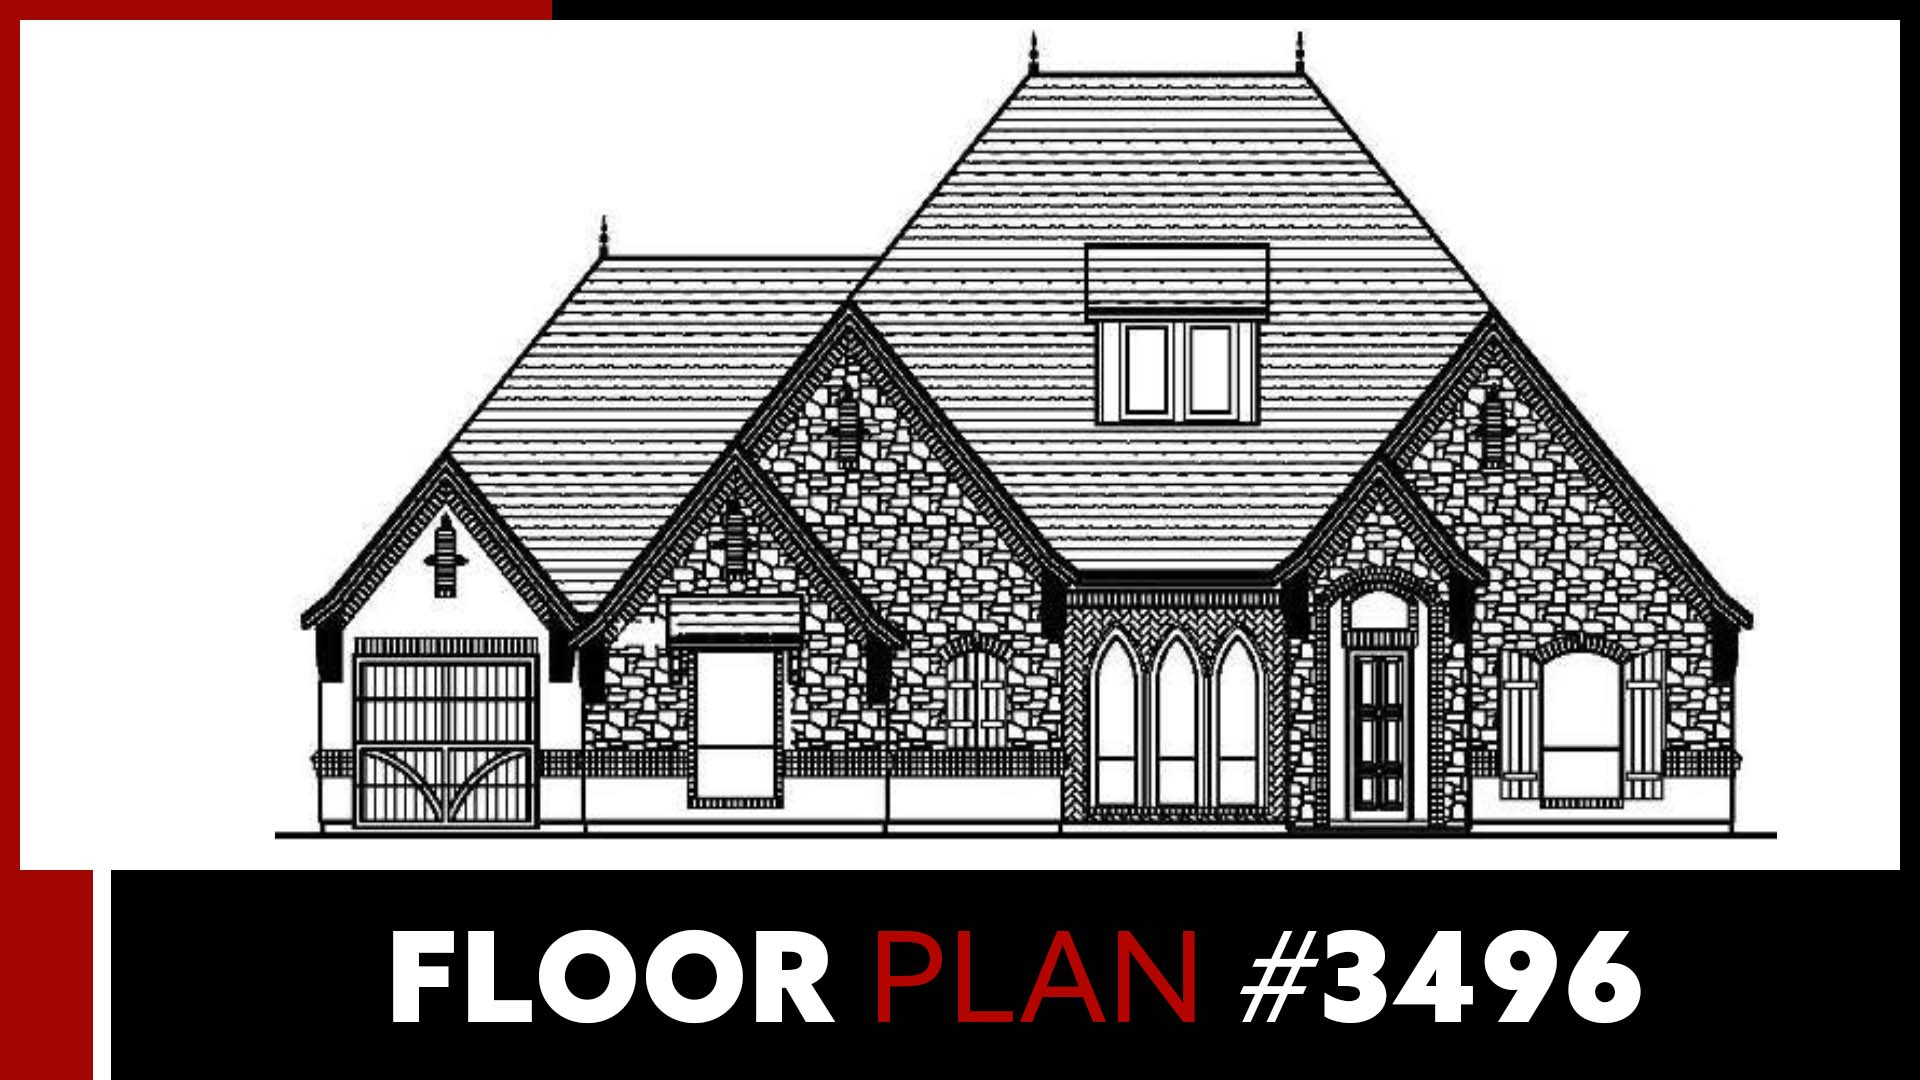 Elevation Plan 3496.jpg